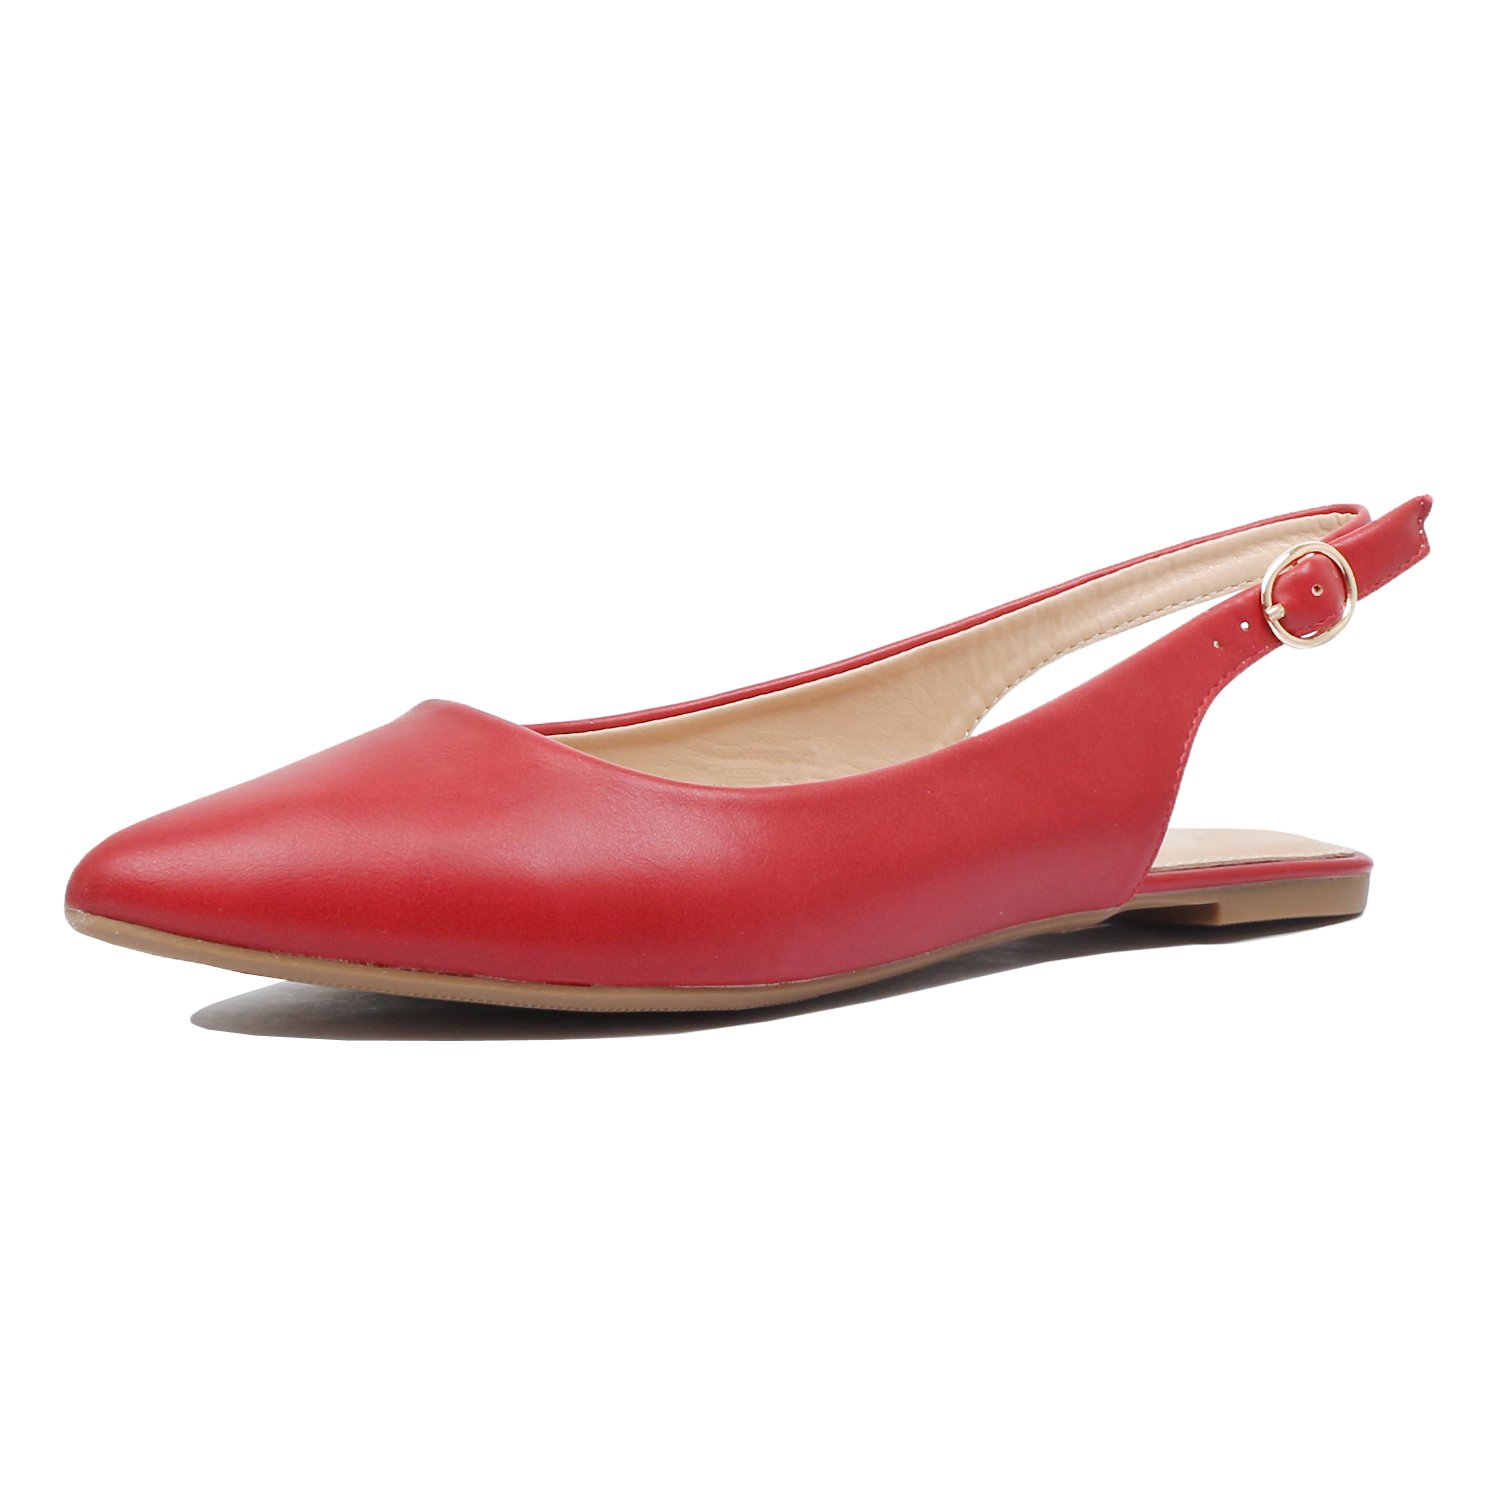 Guilty Heart - Womens Pointy Toe Slingback Buckle Comfortable Casual Dressy Flats (8.5 B(M) US, Red Pu) by Guilty Heart (Image #2)